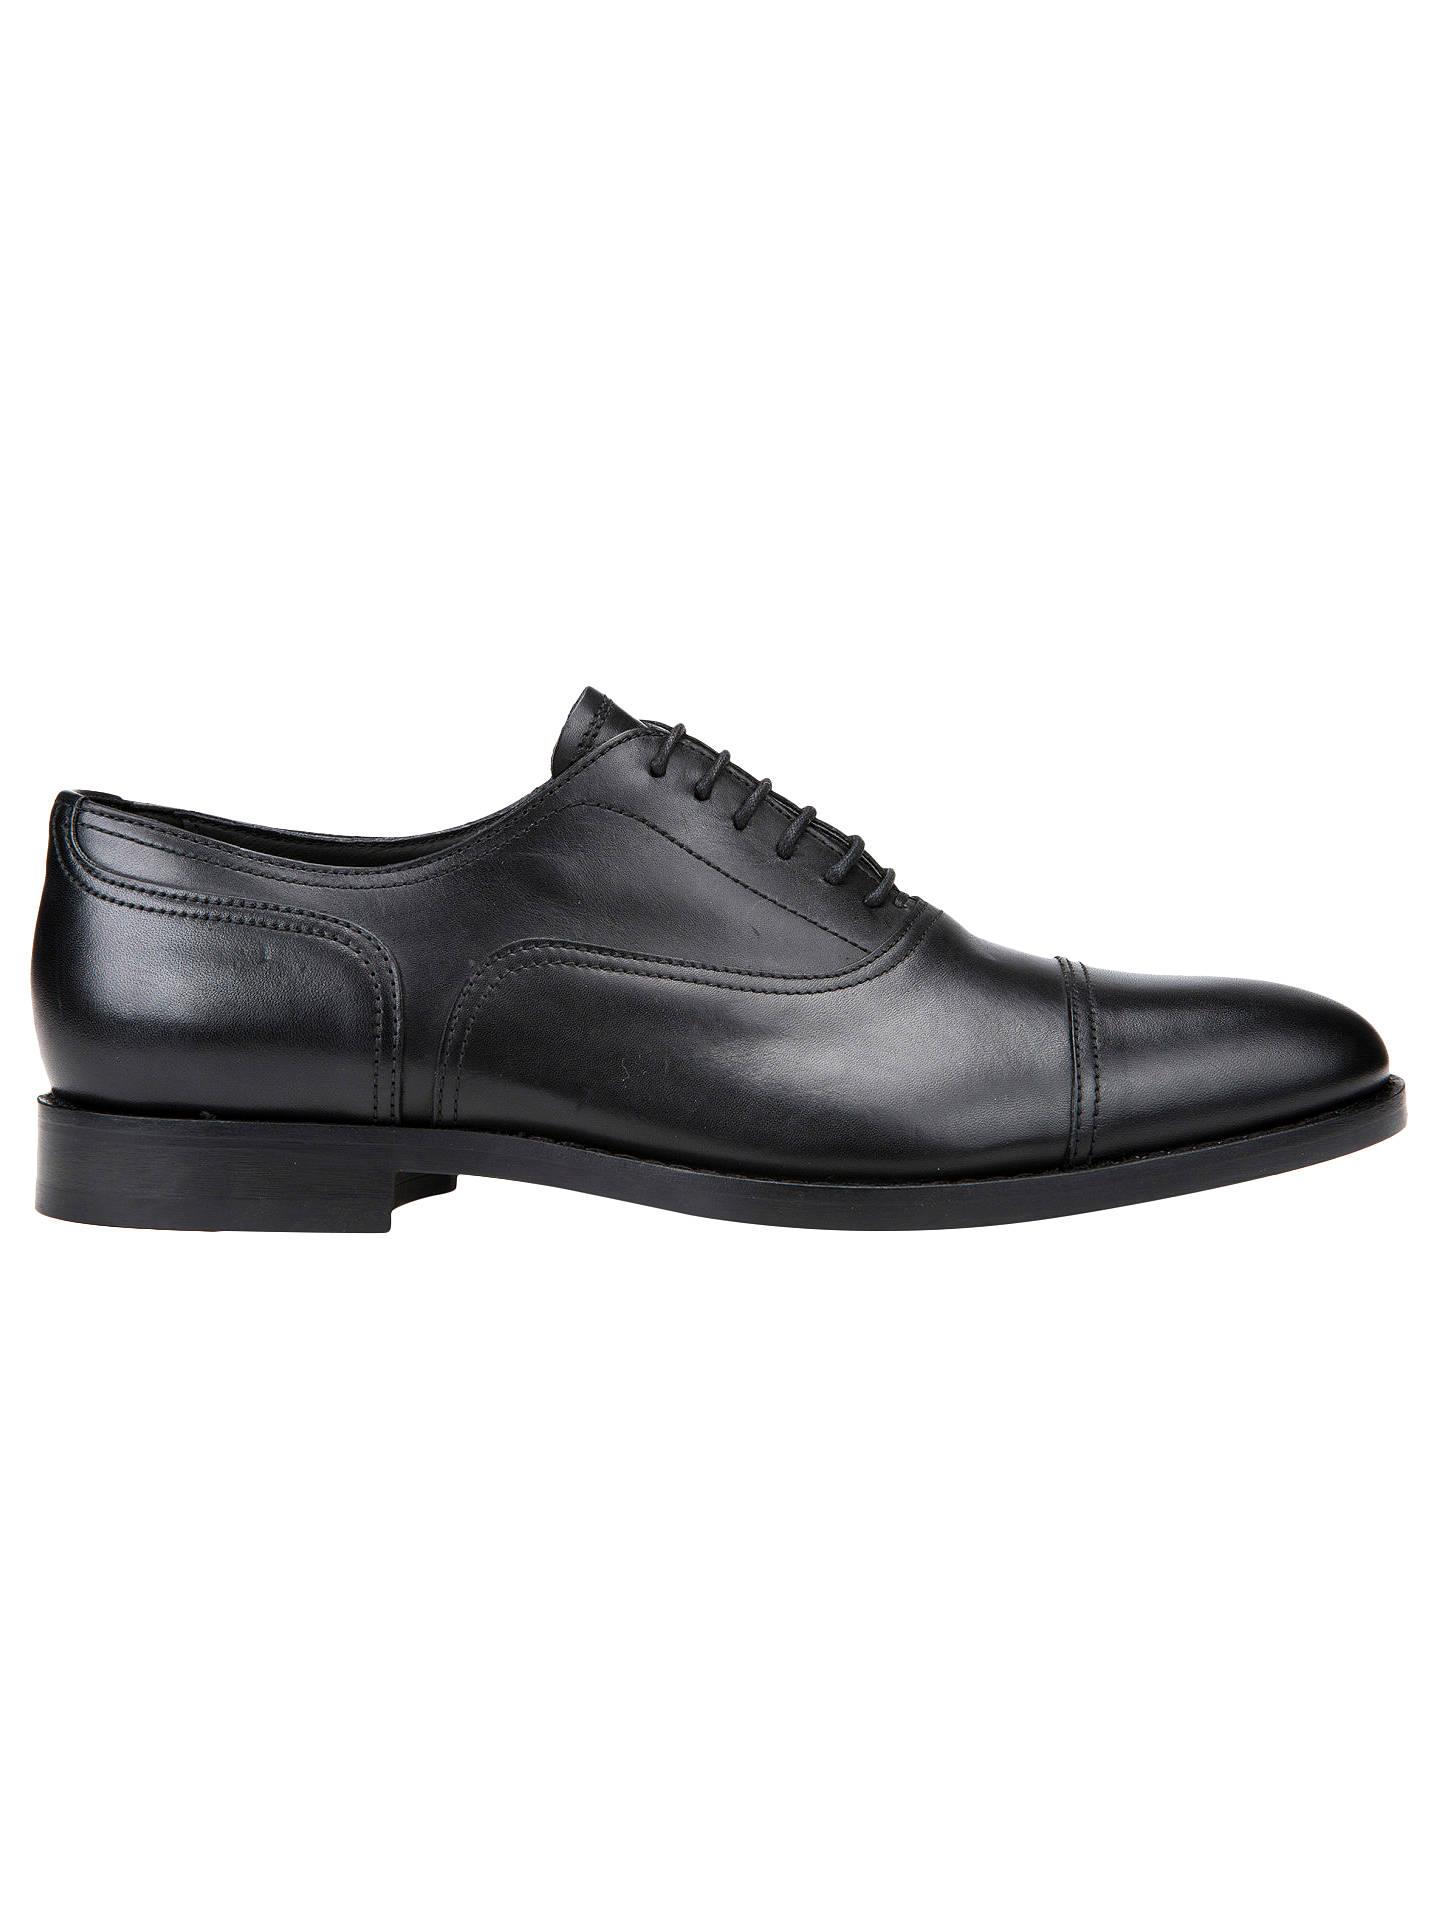 pasar por alto Shuraba Fragua  Geox Hampstead Leather Oxford Shoes, Black at John Lewis & Partners